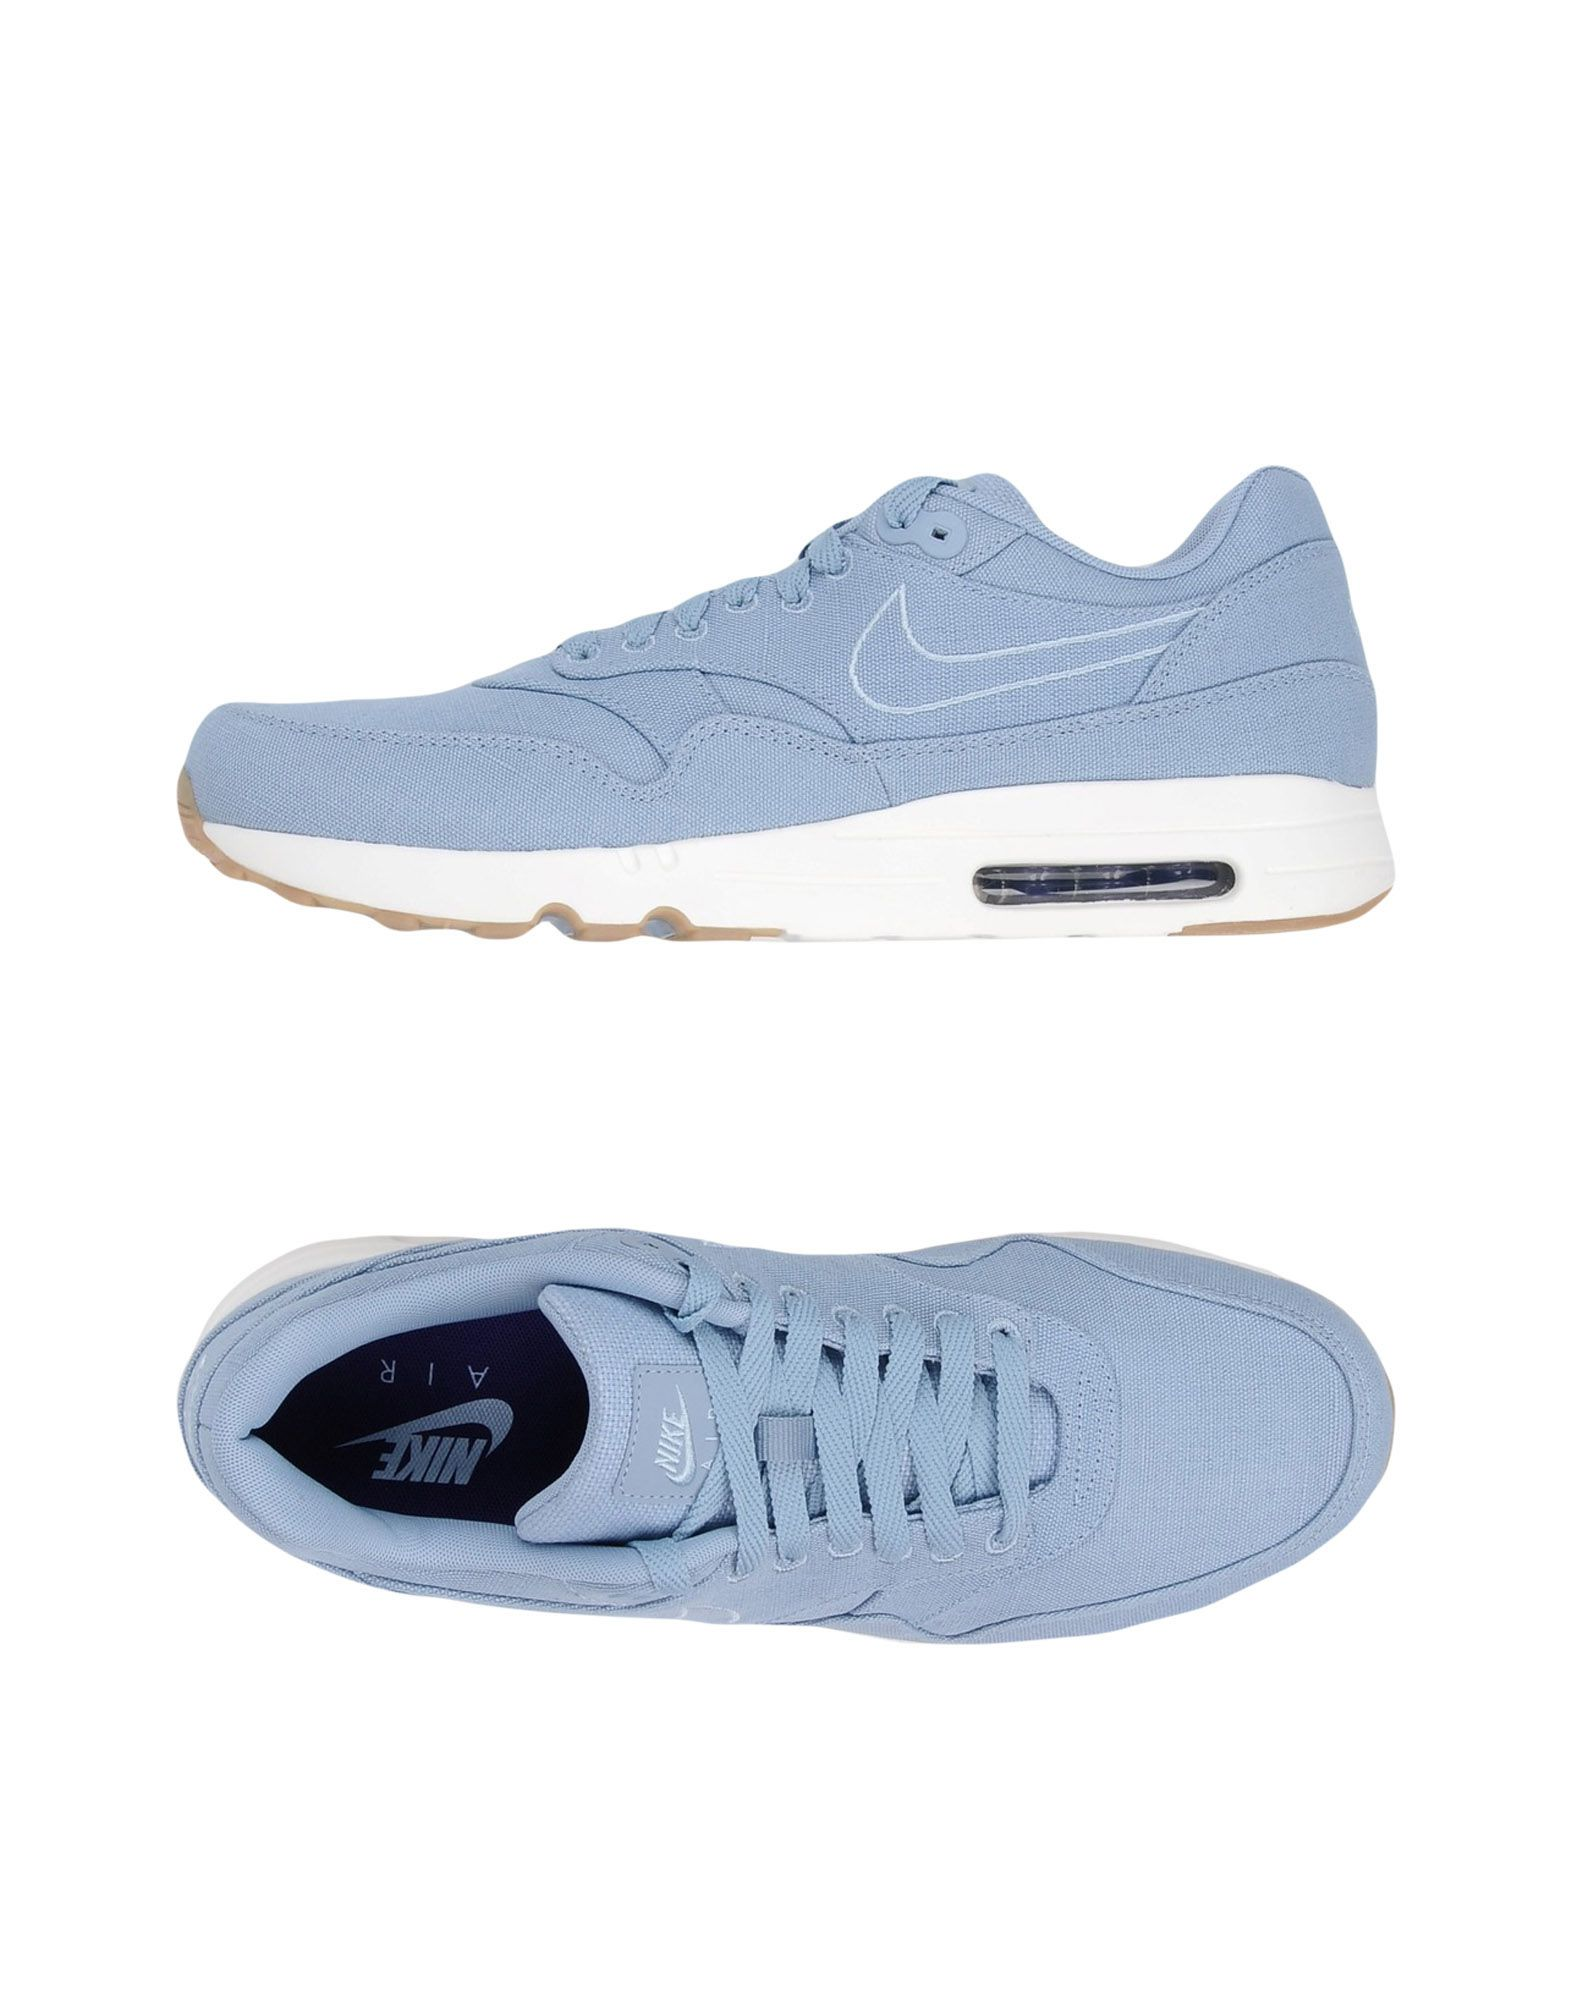 Sneakers Nike  Air Max 1 Ultra 2.0 Textile - Uomo - 11279883IW